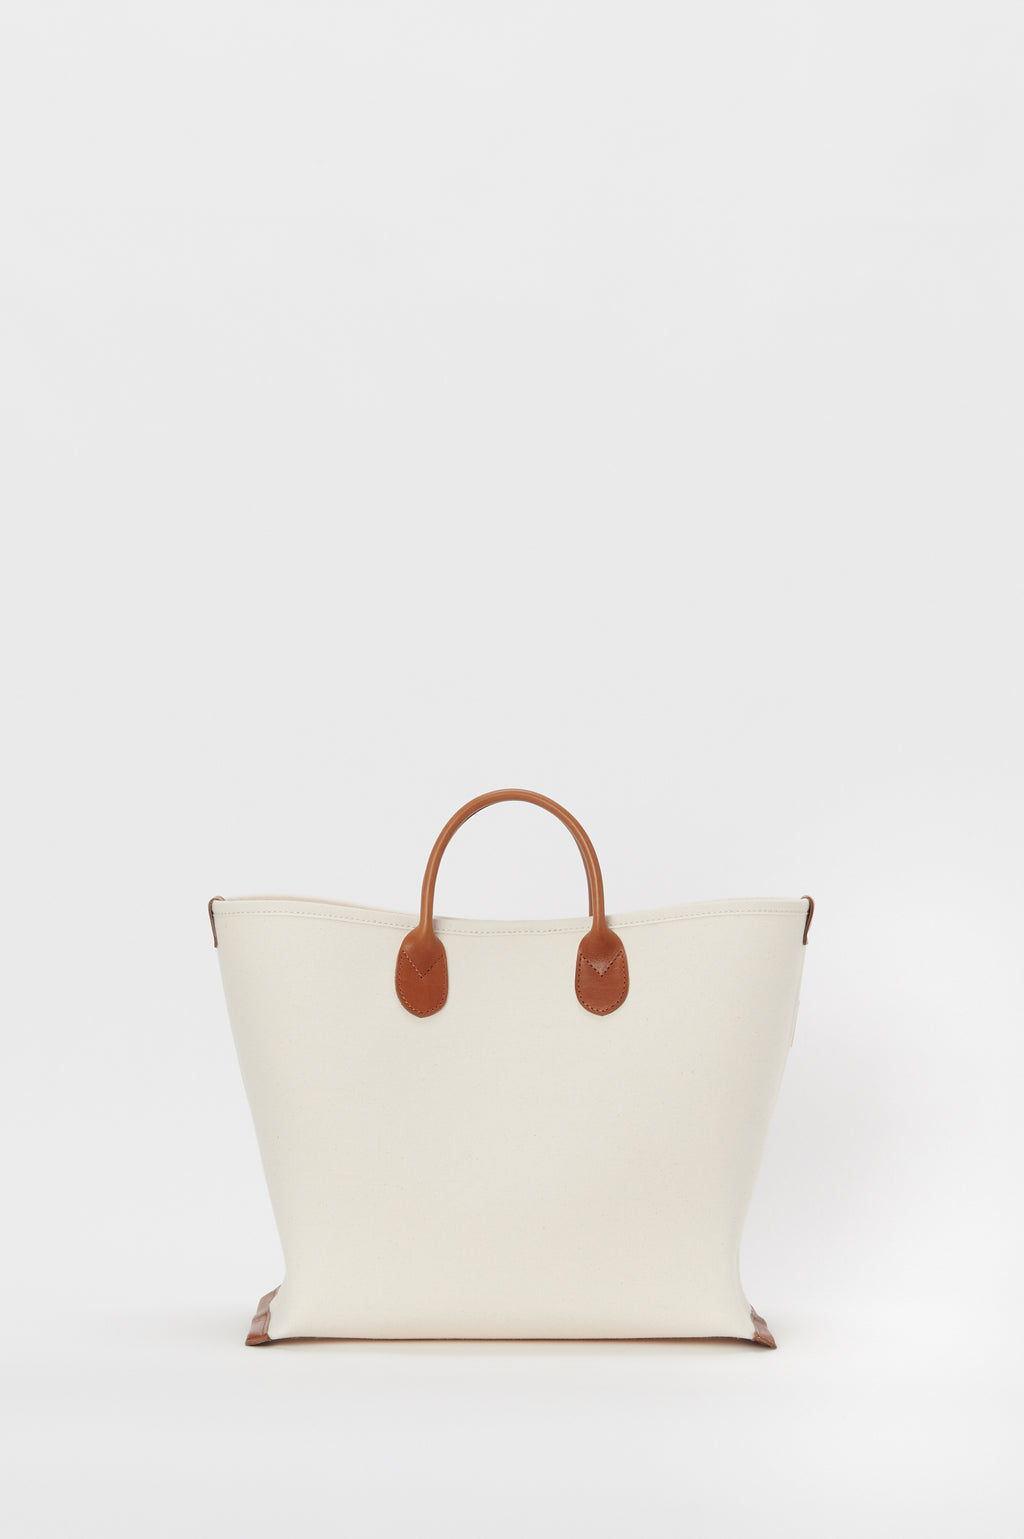 Bonding Canvas Bag M in Natural / Brown